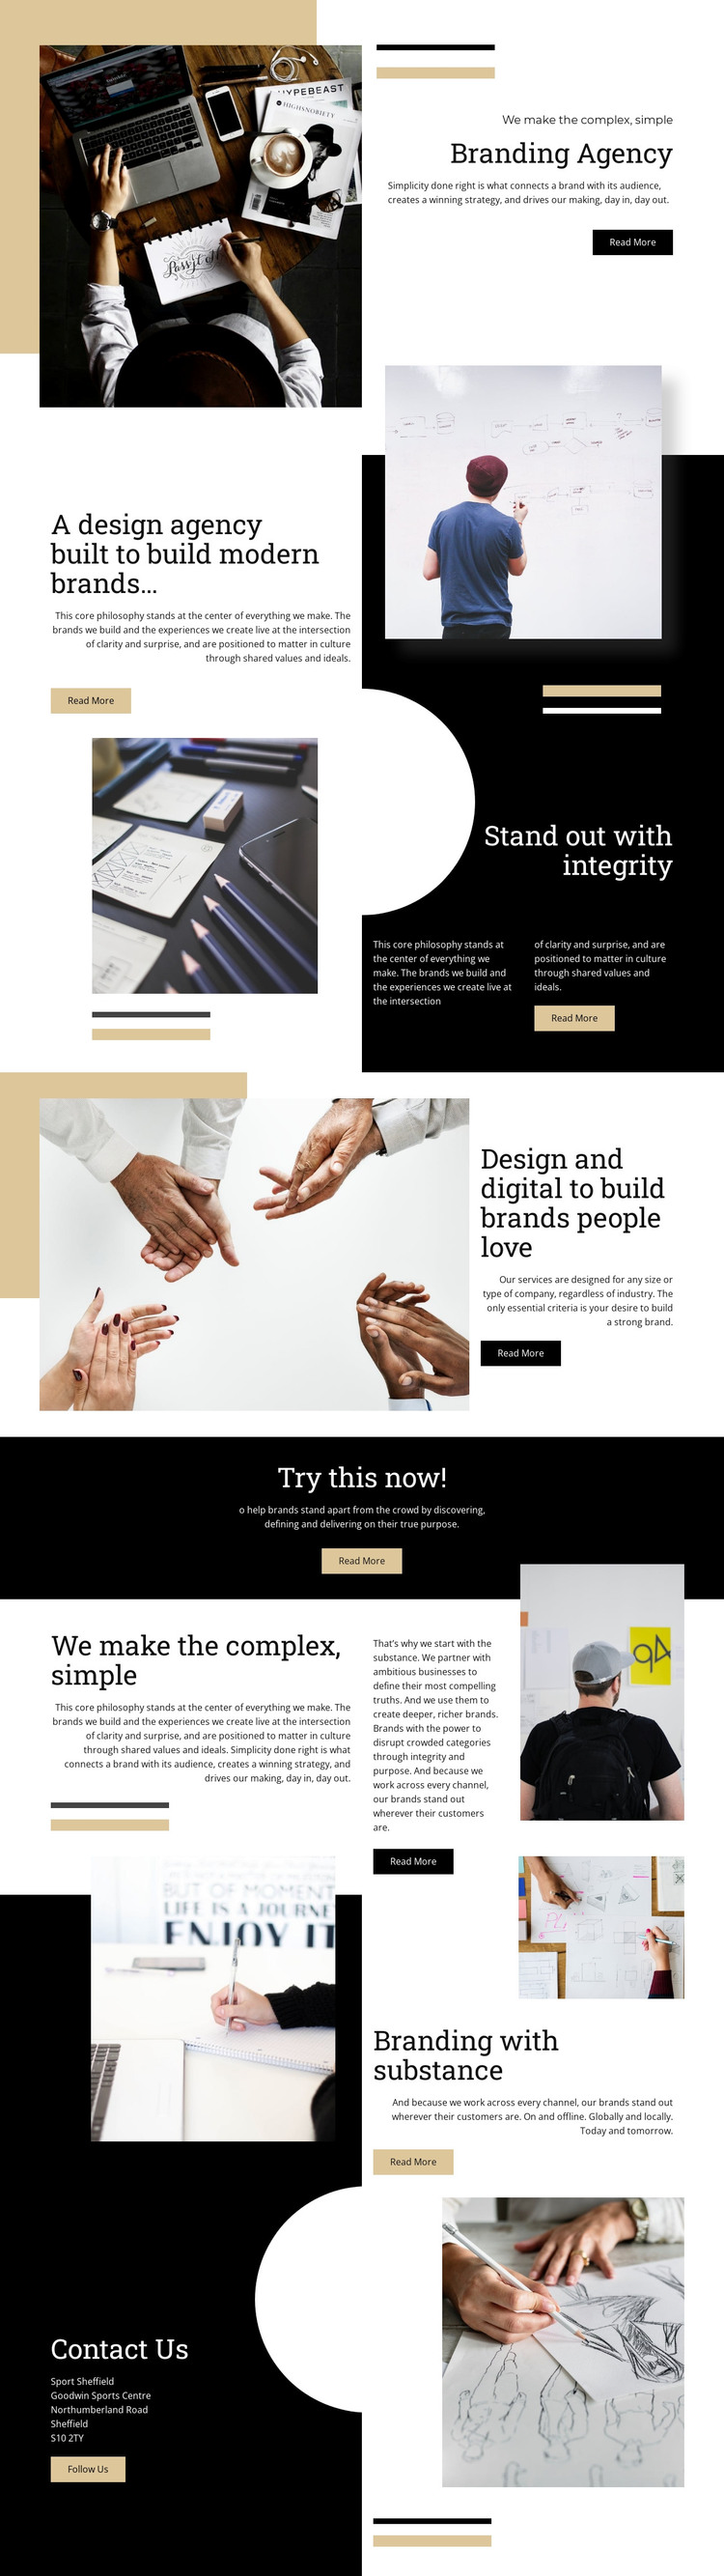 Branding Agency WordPress Theme